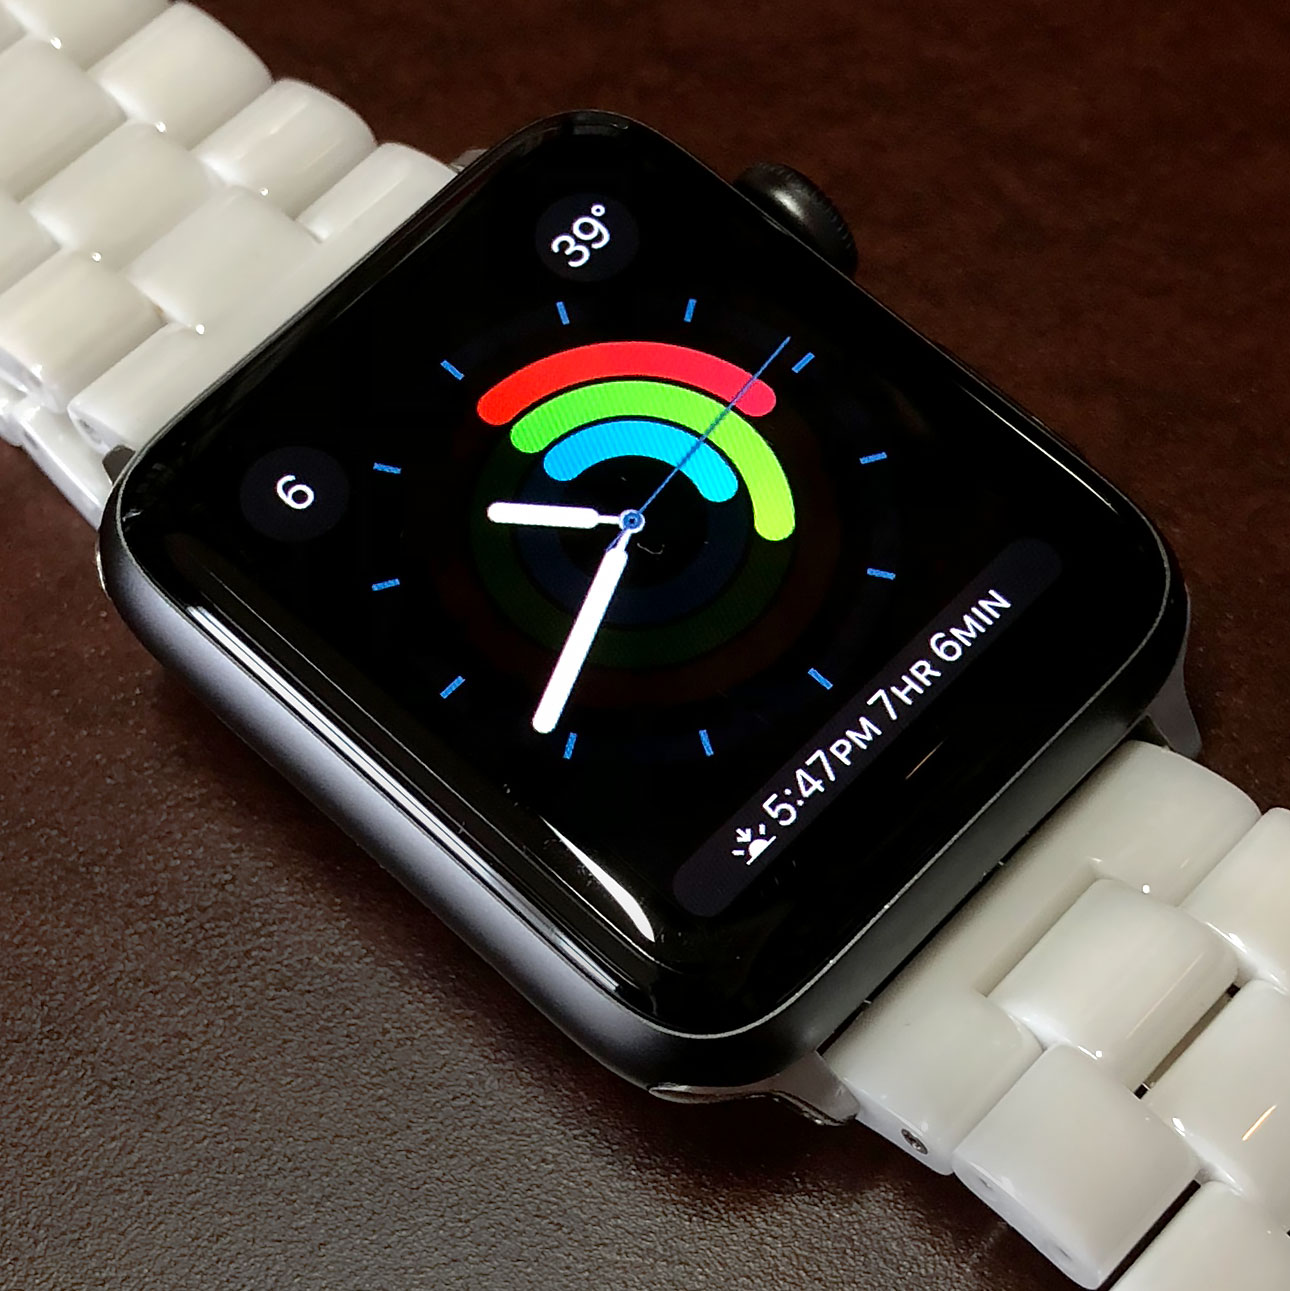 apple ifcfwmflpqlyyybegqgm watch only hands time gizmodo will watches on tell